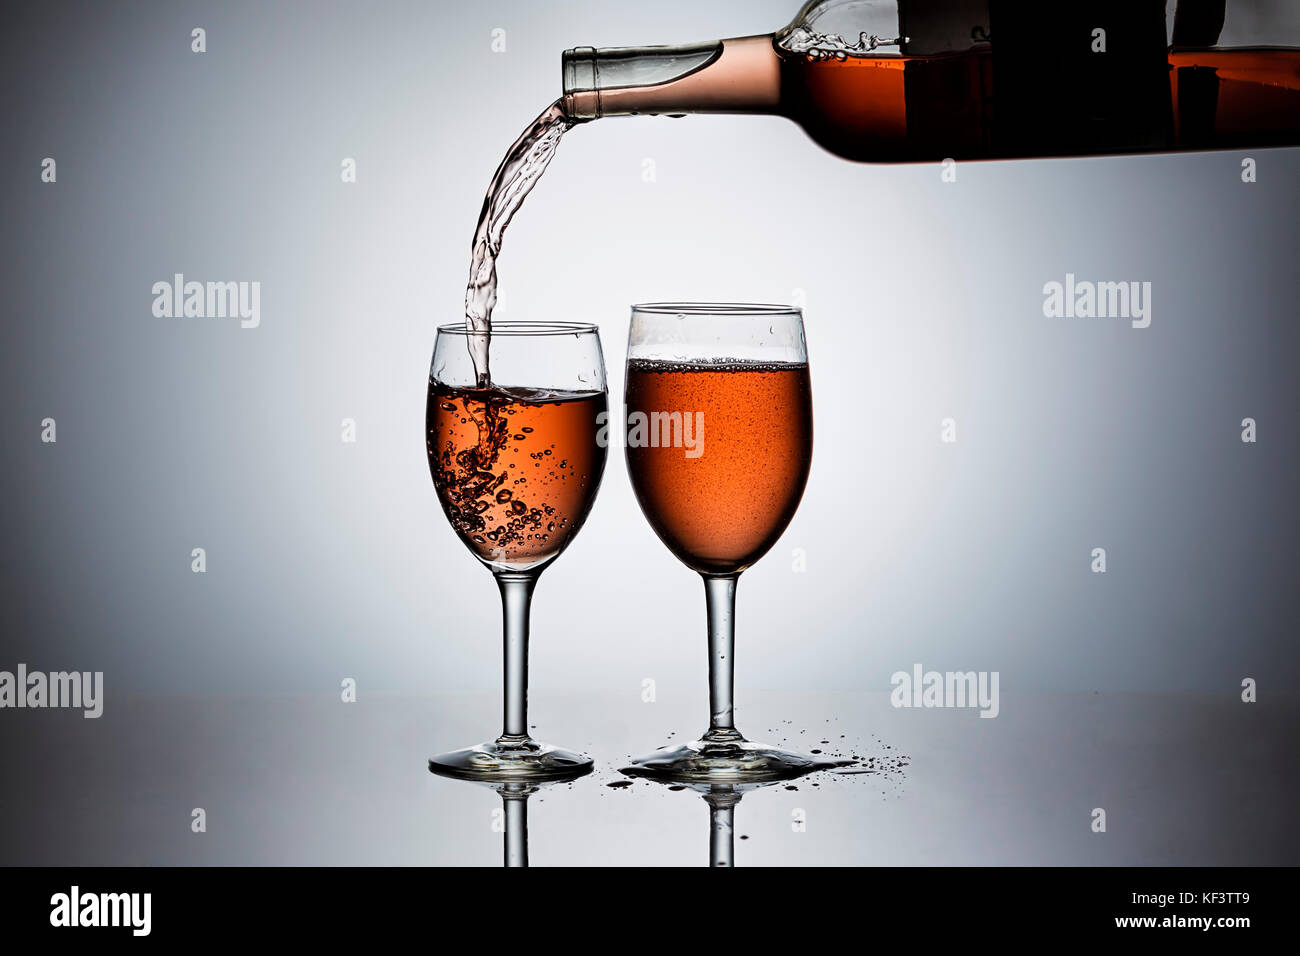 Pouring rose' wine form a bottle into wine glasses. - Stock Image